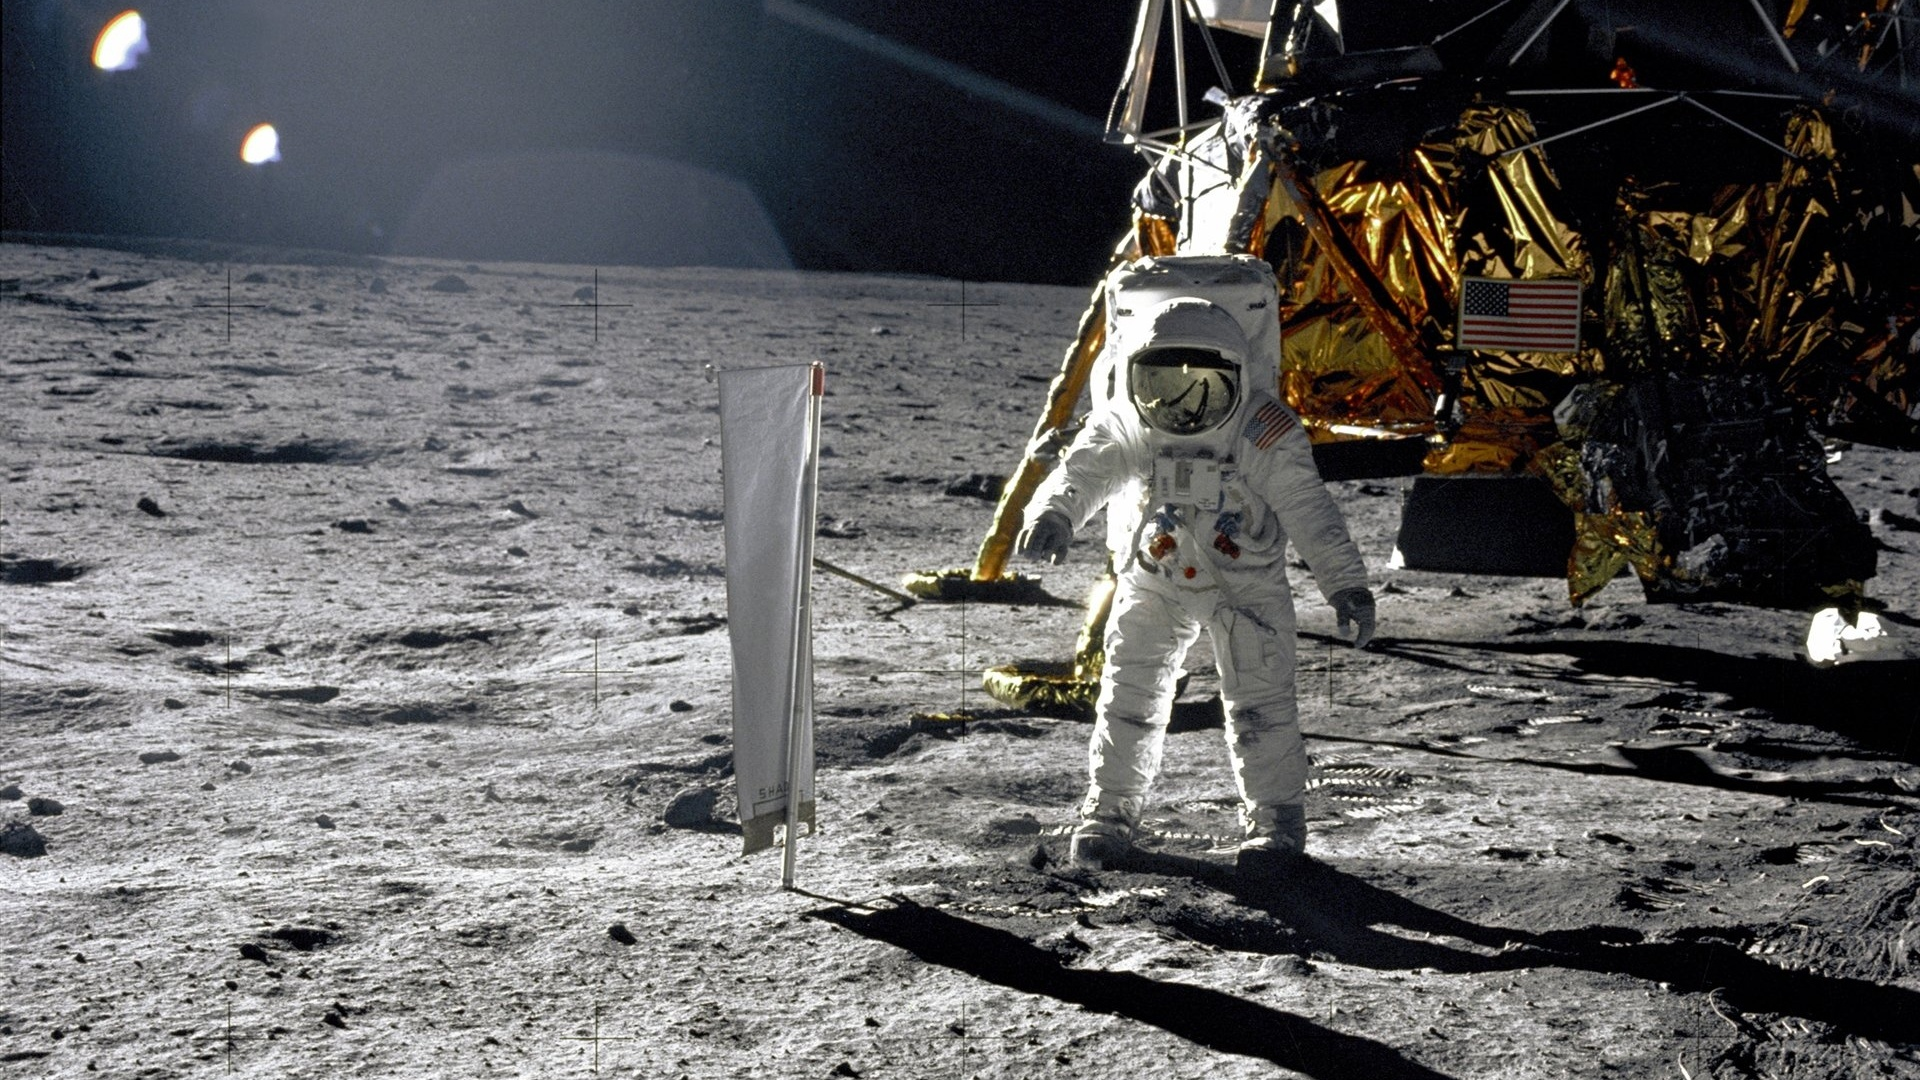 10 amazing facts about the apollo 11 moon landing - HD1280×960